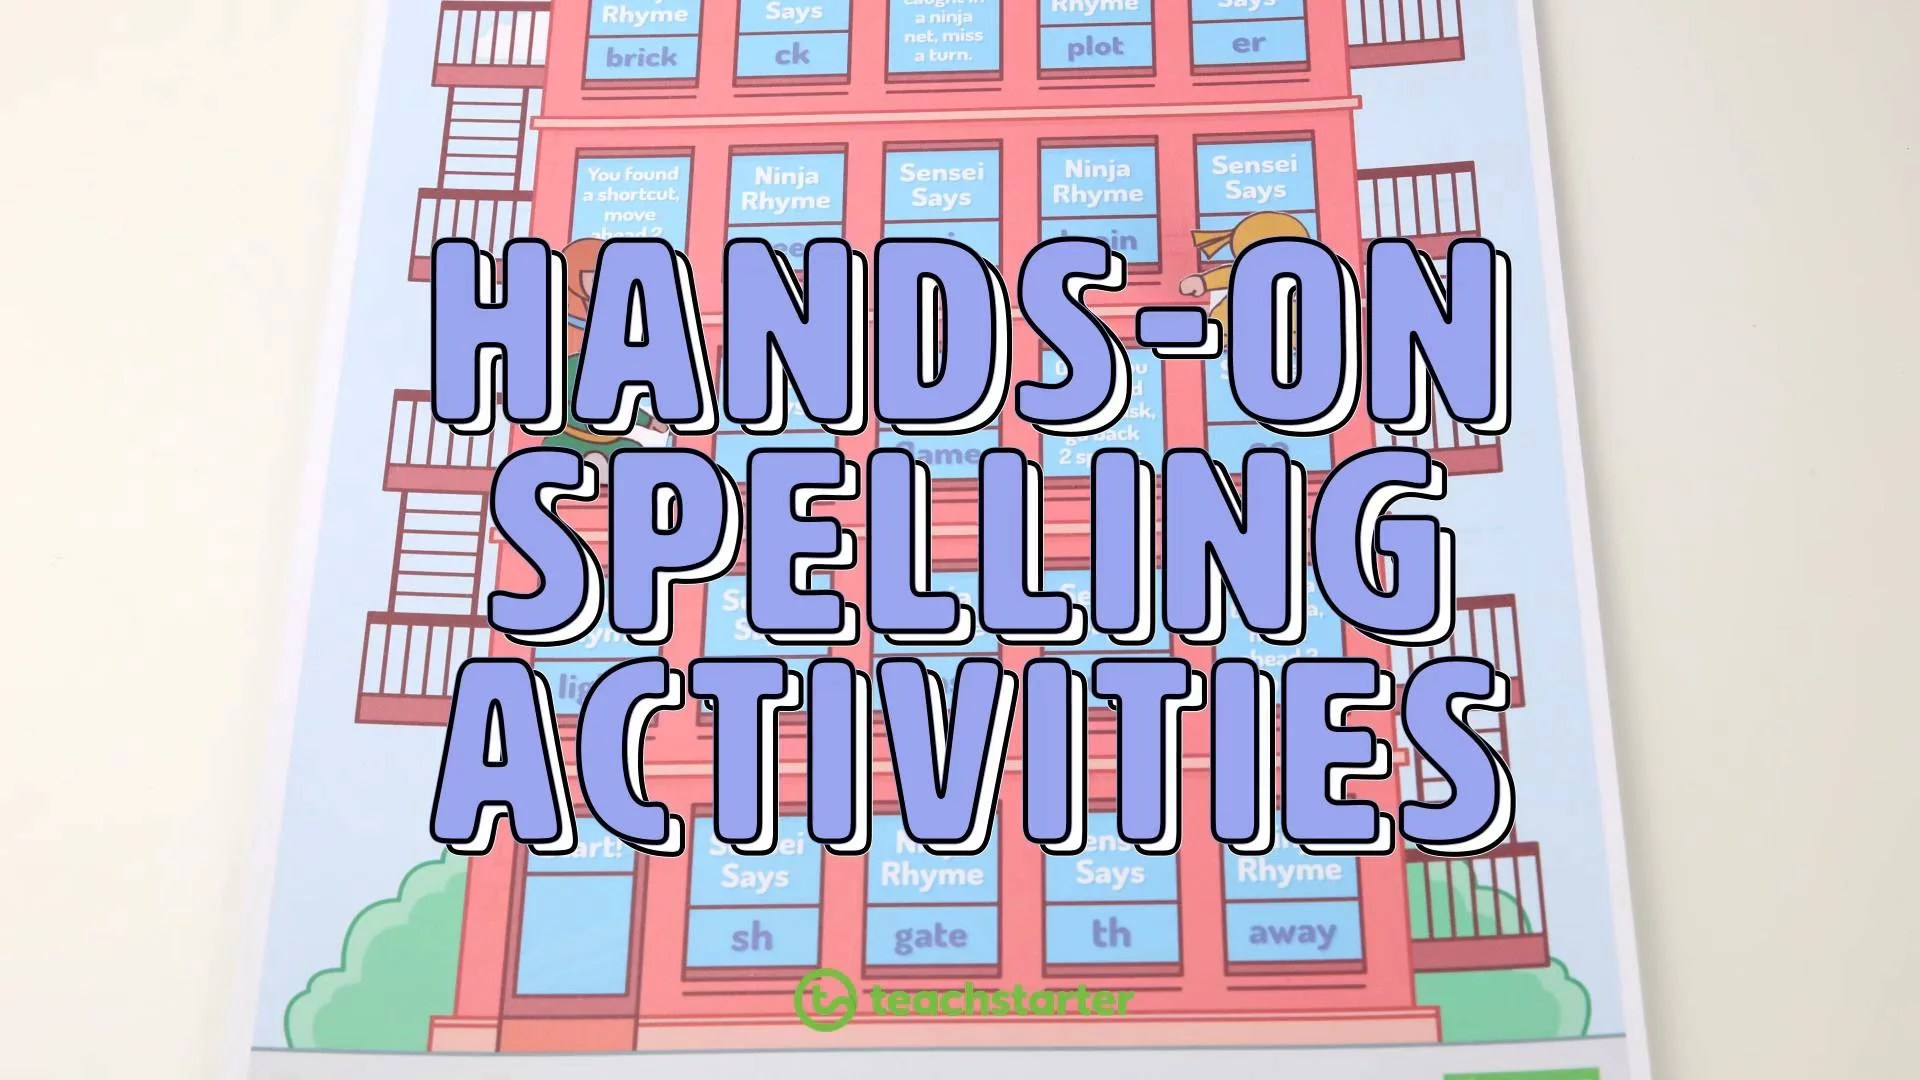 hight resolution of 14 Fun Spelling Activity Ideas to Use in the Classroom   Teach Starter